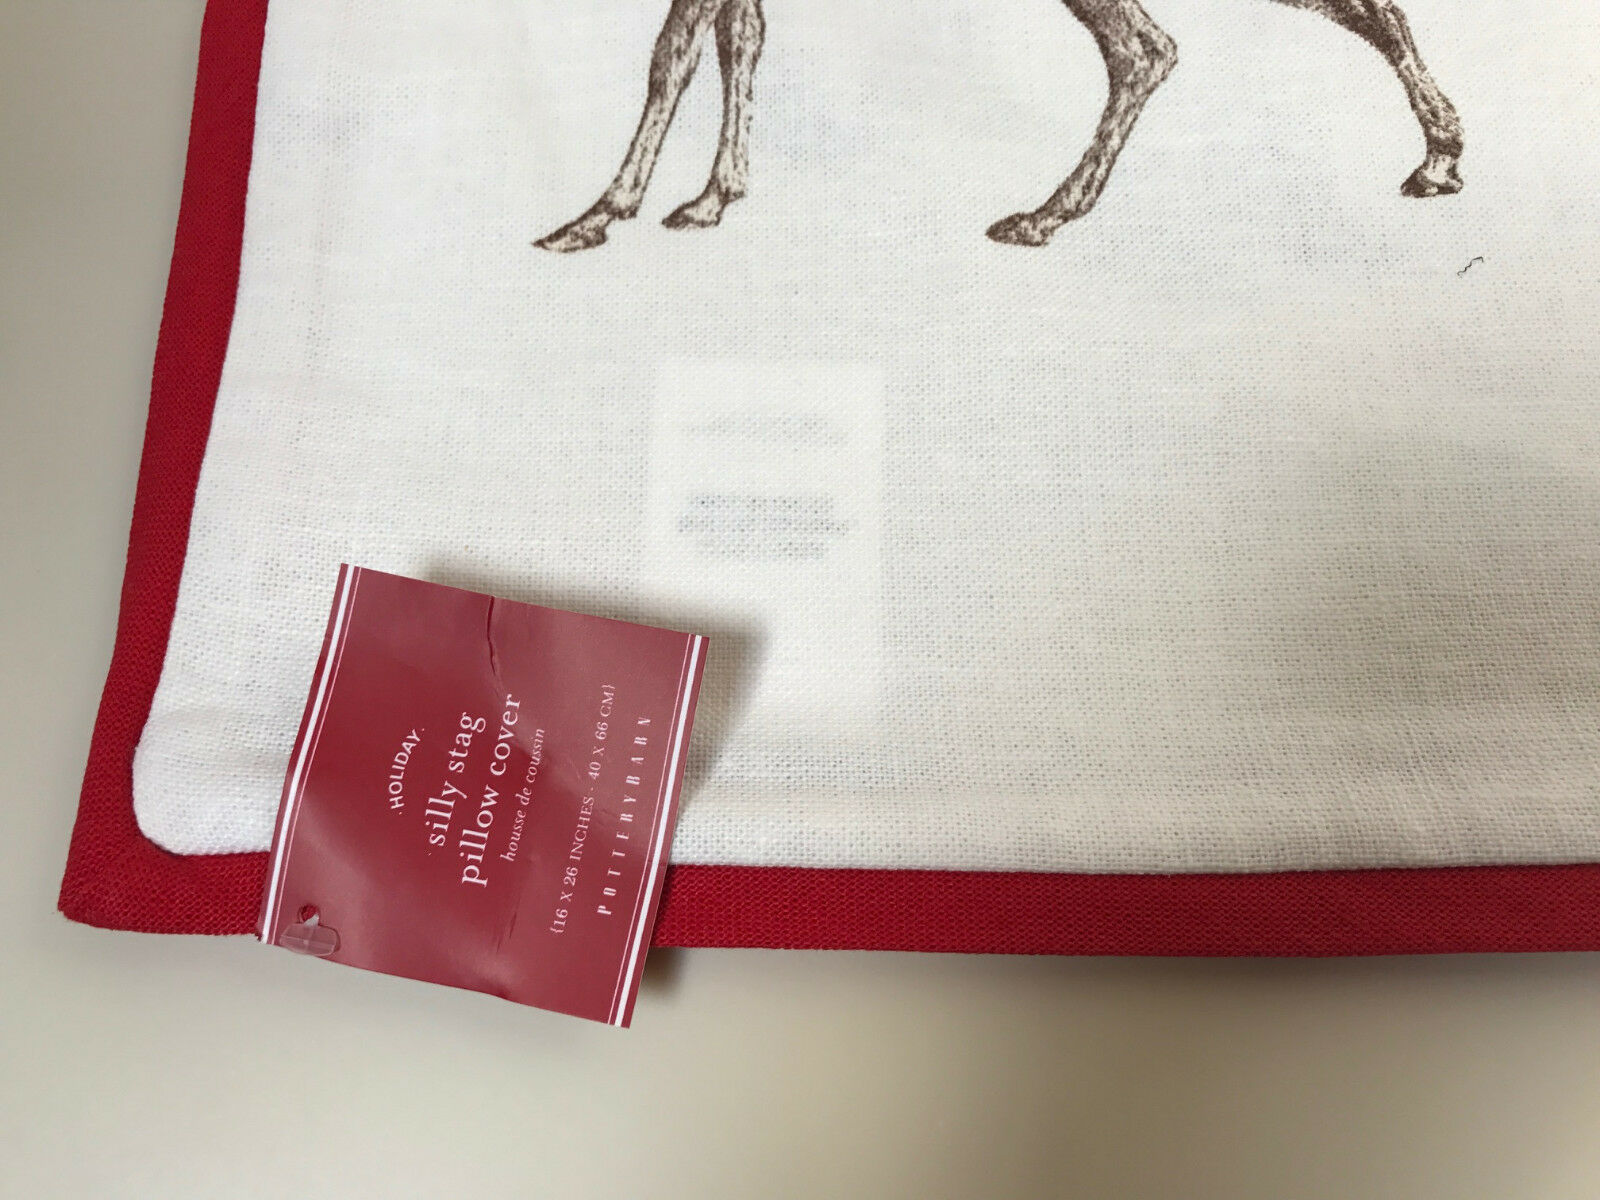 Pottery Barn Silly Stag Lumbar Pillow Cover 16 x 26